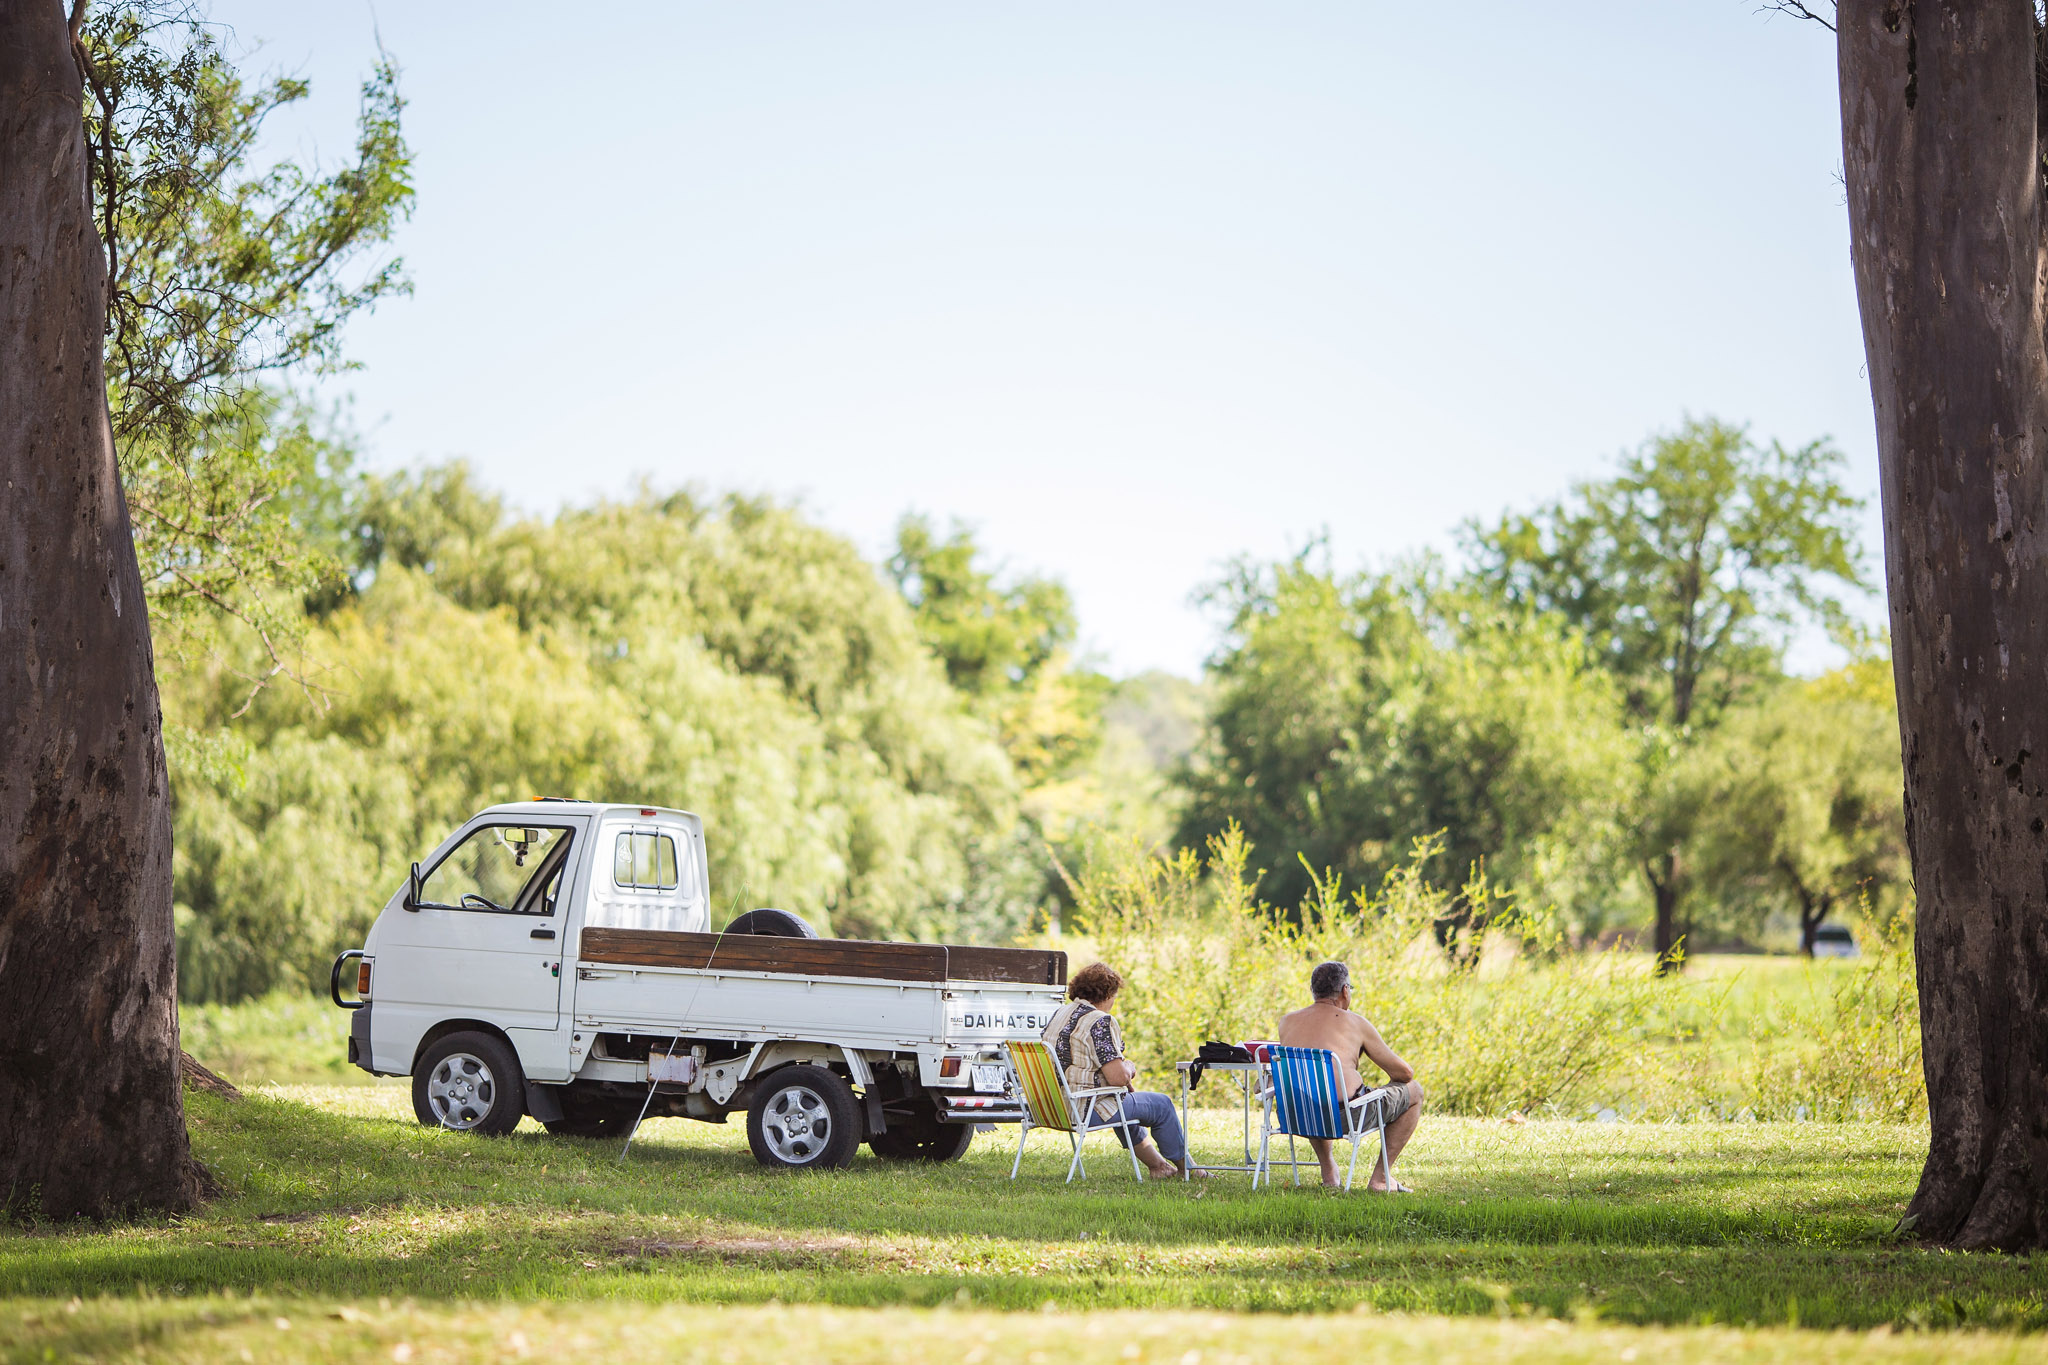 wedding-travellers-destination-photography-overlanding-south-america-uruguay-mercedes-park-relax-chill